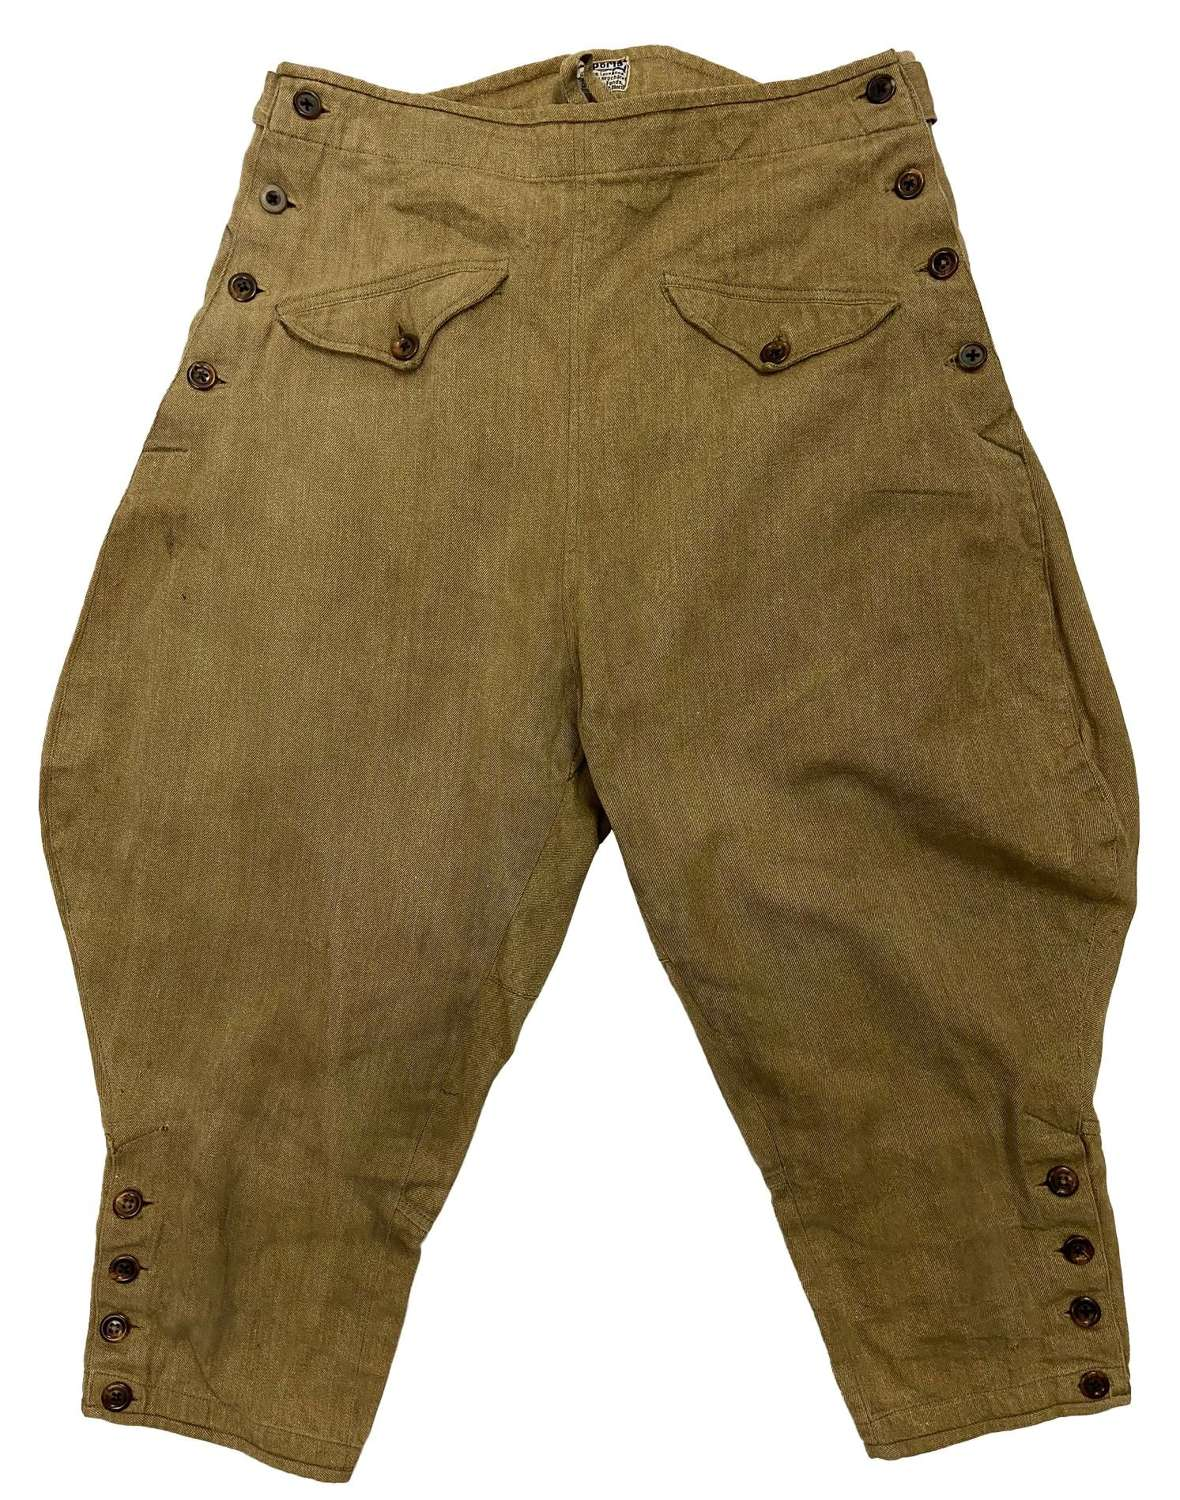 Original 1940s Swiss Women's Cotton Twill Breeches by 'OCH'